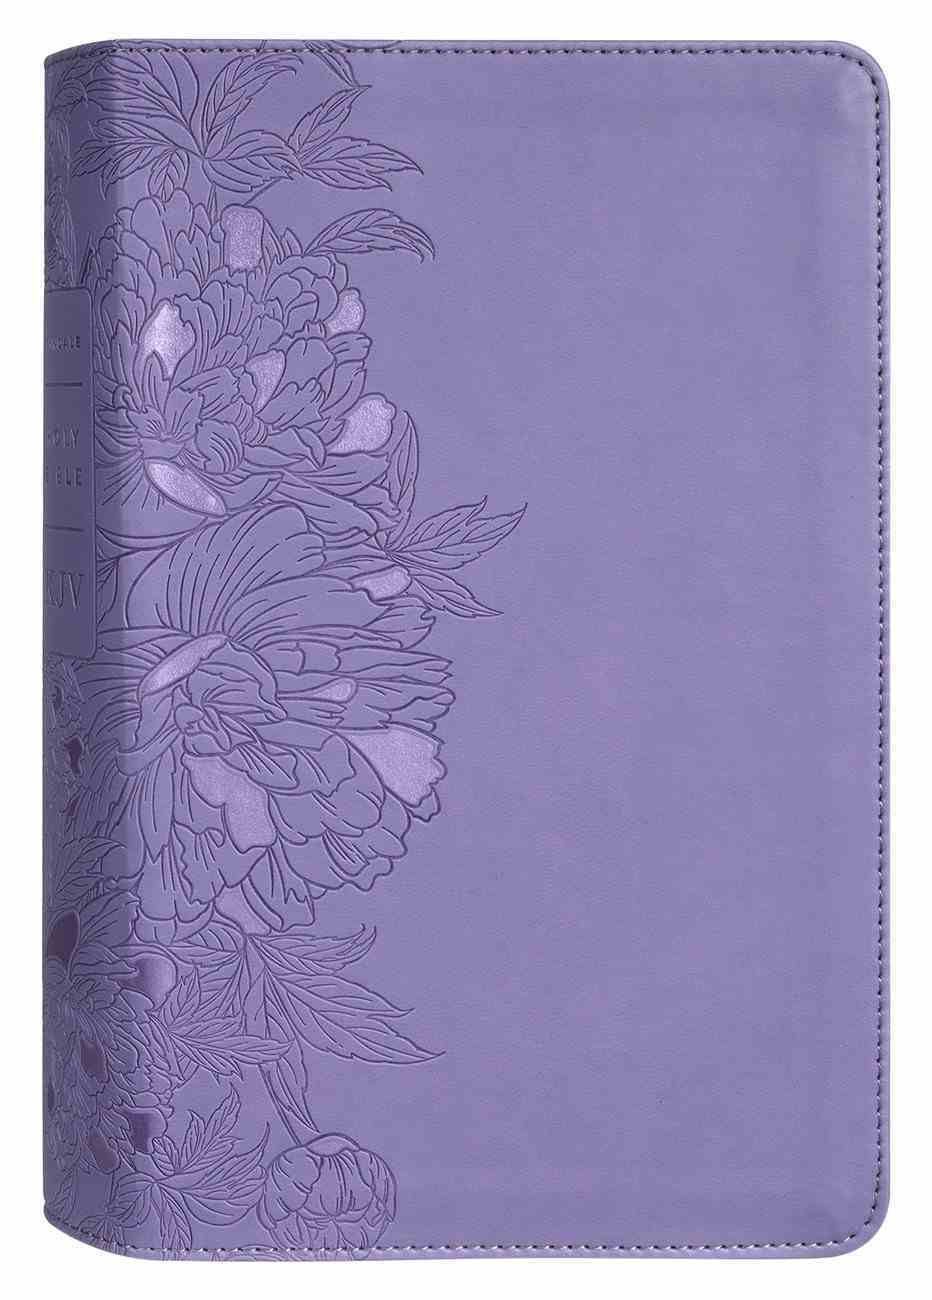 KJV Personal Size Giant Print Bible Filament Enabled Edition Peony Lavender (Red Letter Edition) Imitation Leather